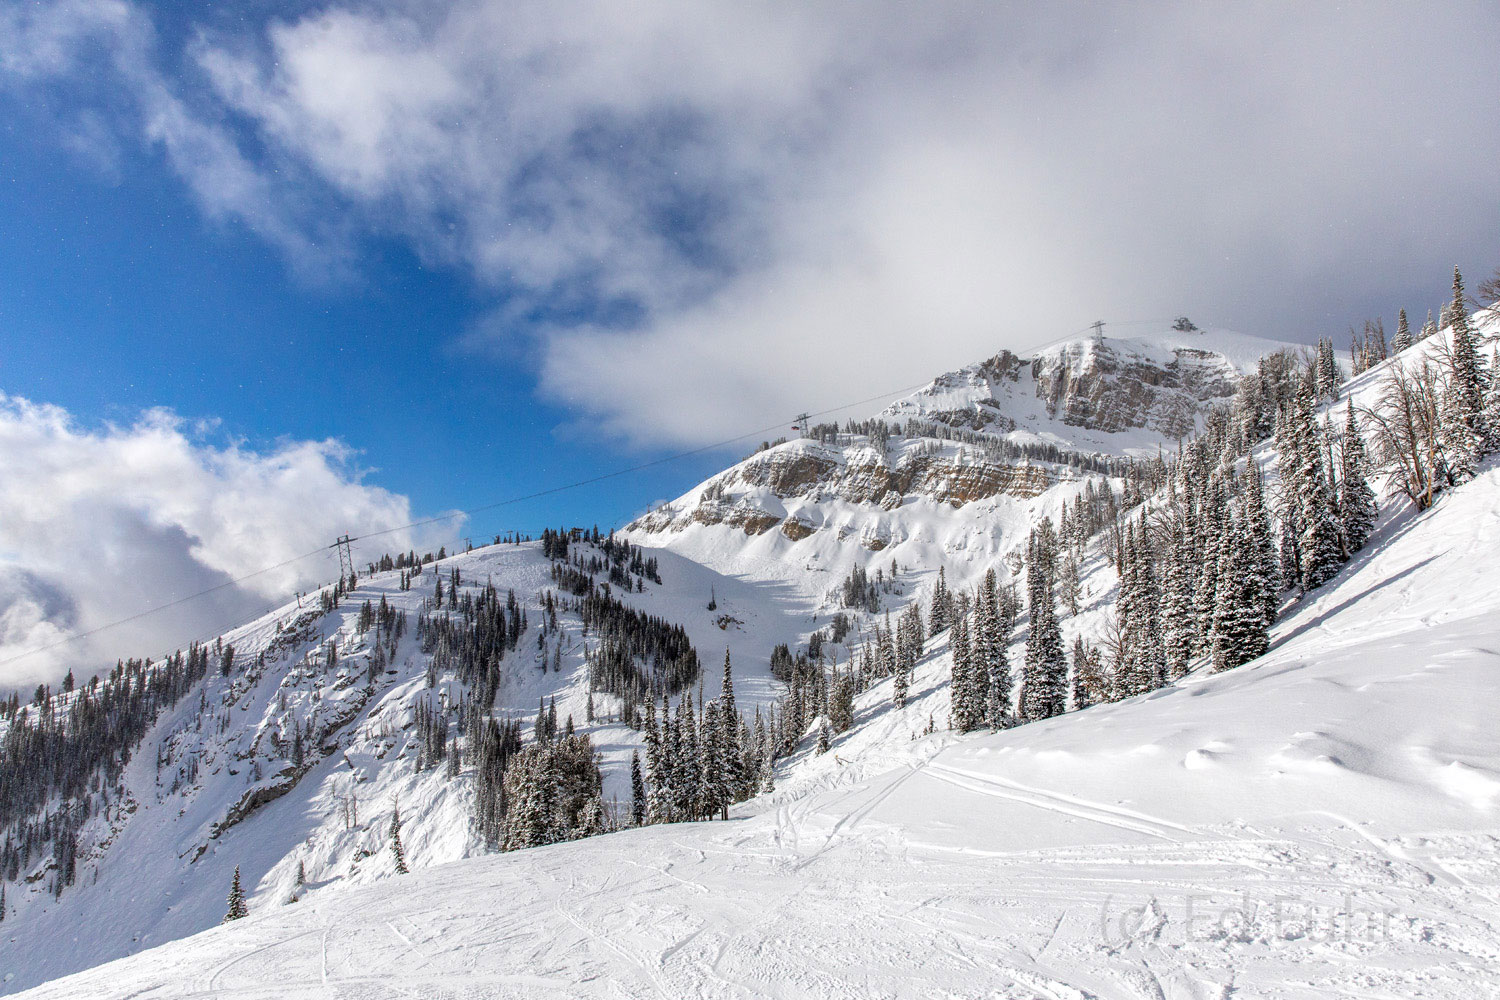 An advantage to skiing is the opportunity to experience some higher regions of the Tetons, including the areas surrounding Sublette...